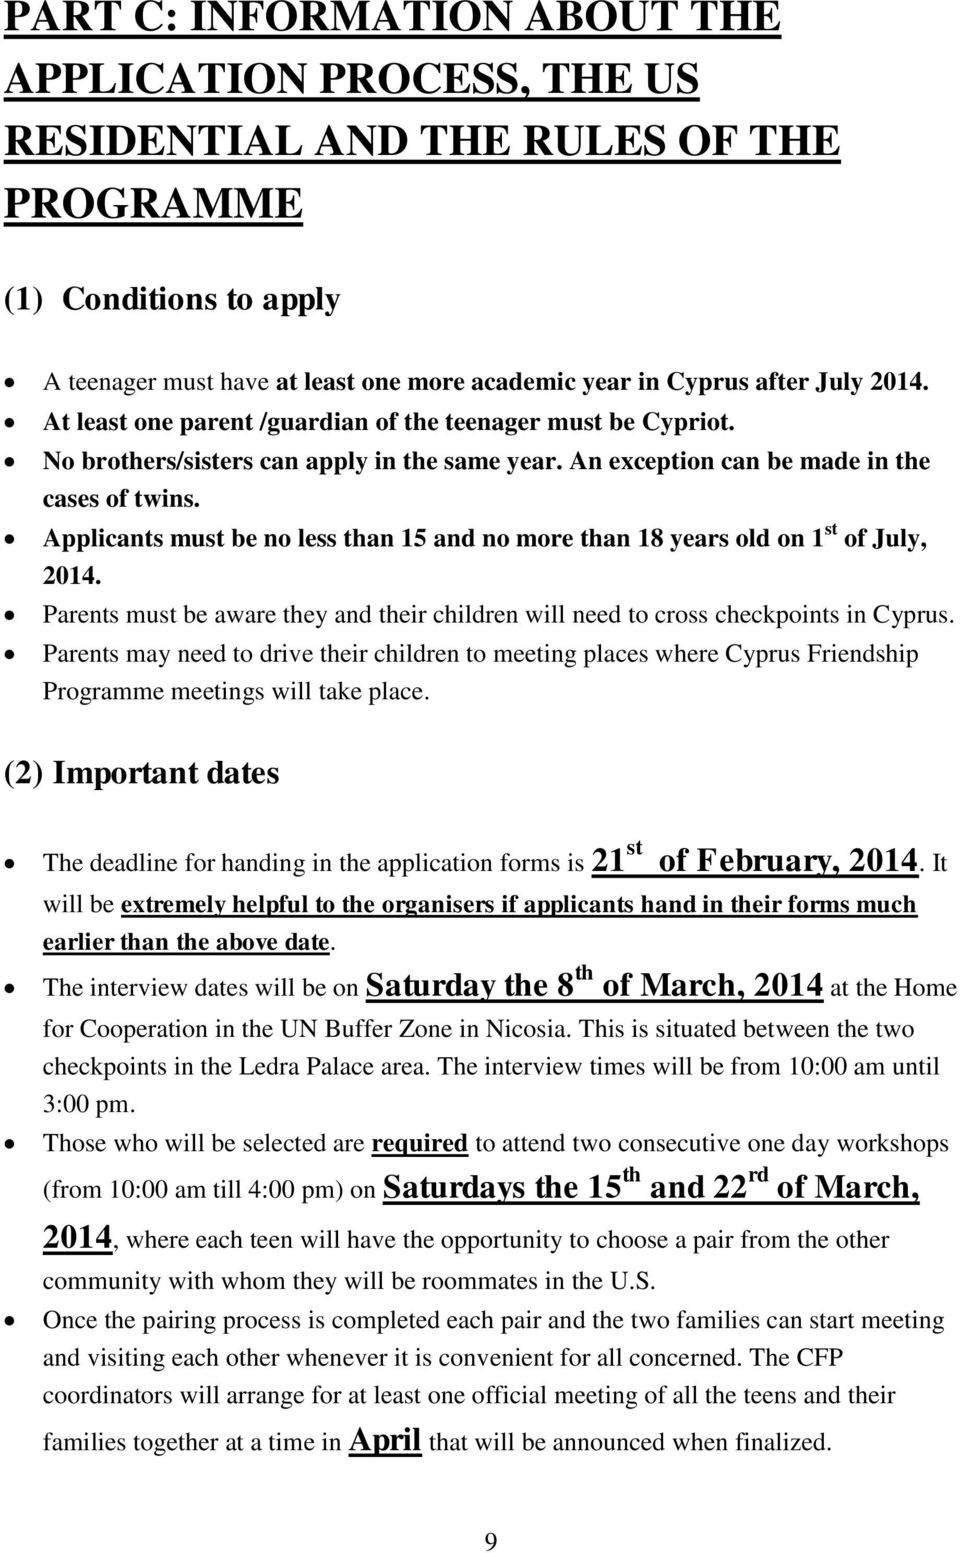 Applicants must be no less than 15 and no more than 18 years old on 1 st of July, 2014. Parents must be aware they and their children will need to cross checkpoints in Cyprus.